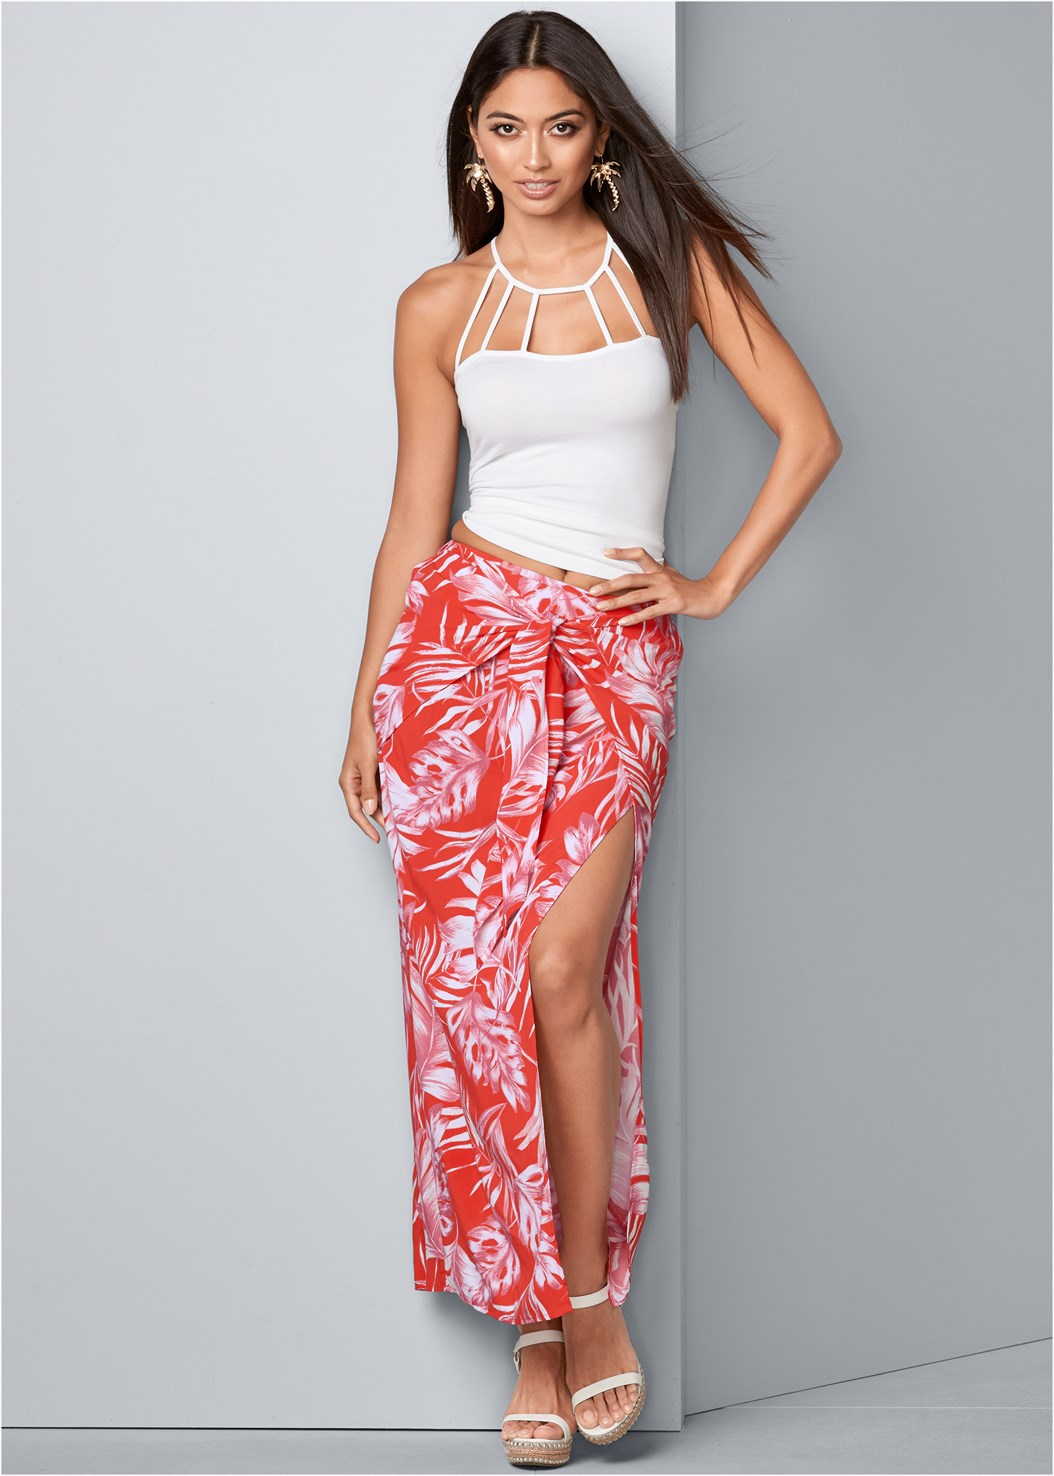 Tie Front Maxi Skirt,Strappy Detail Top,Palm Tree Earrings